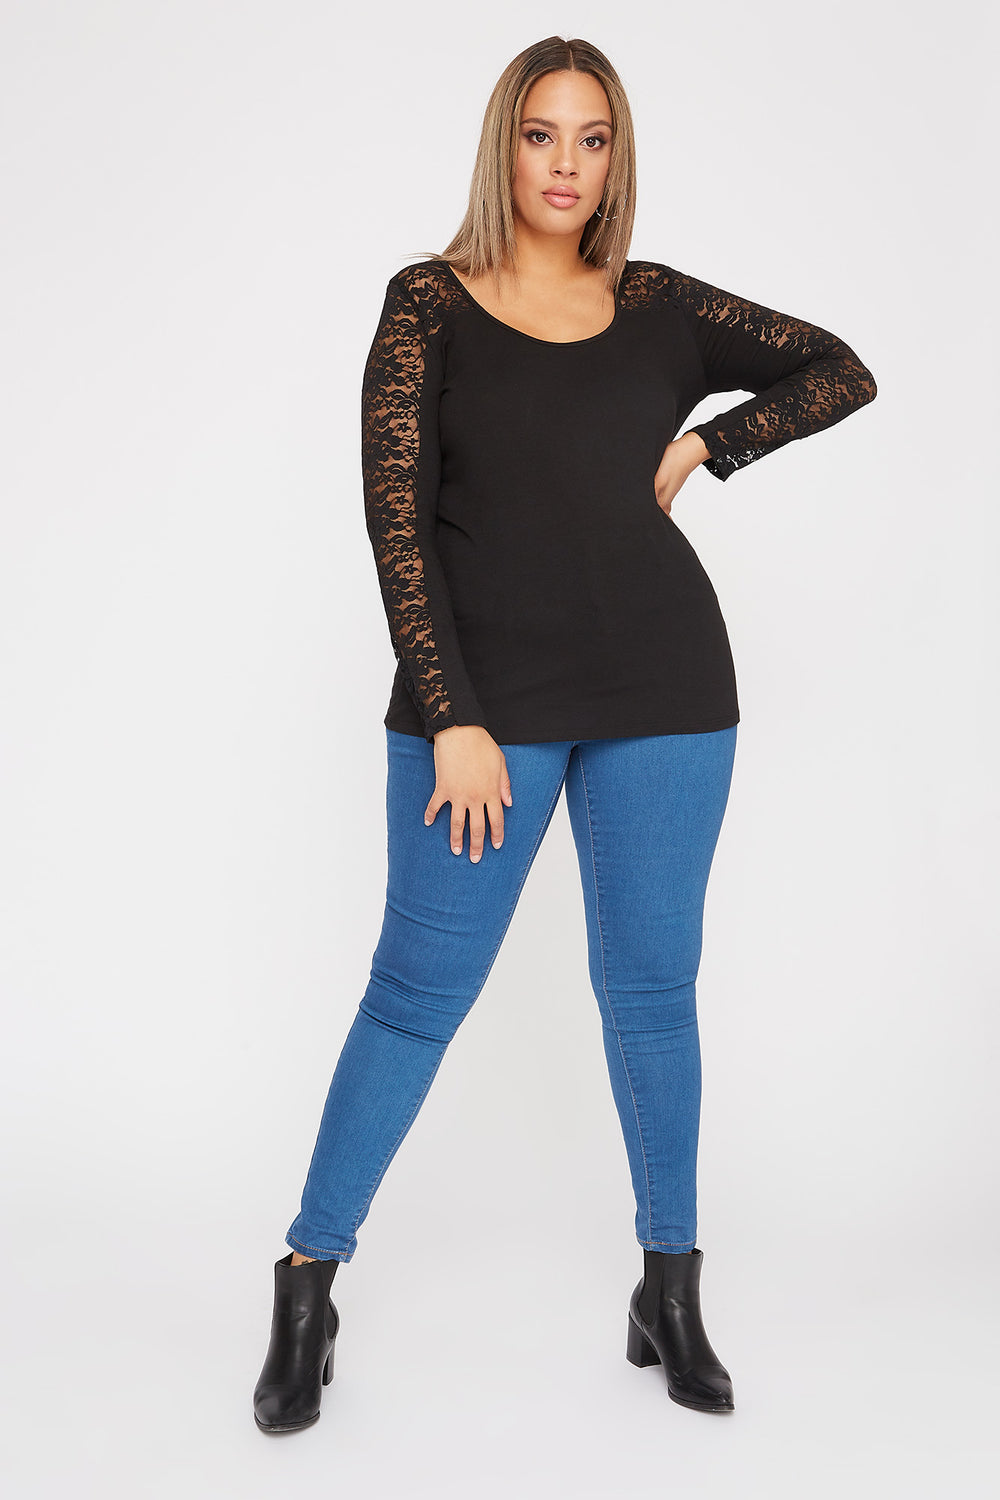 Plus Size Contrast Lace Long Sleeve Black